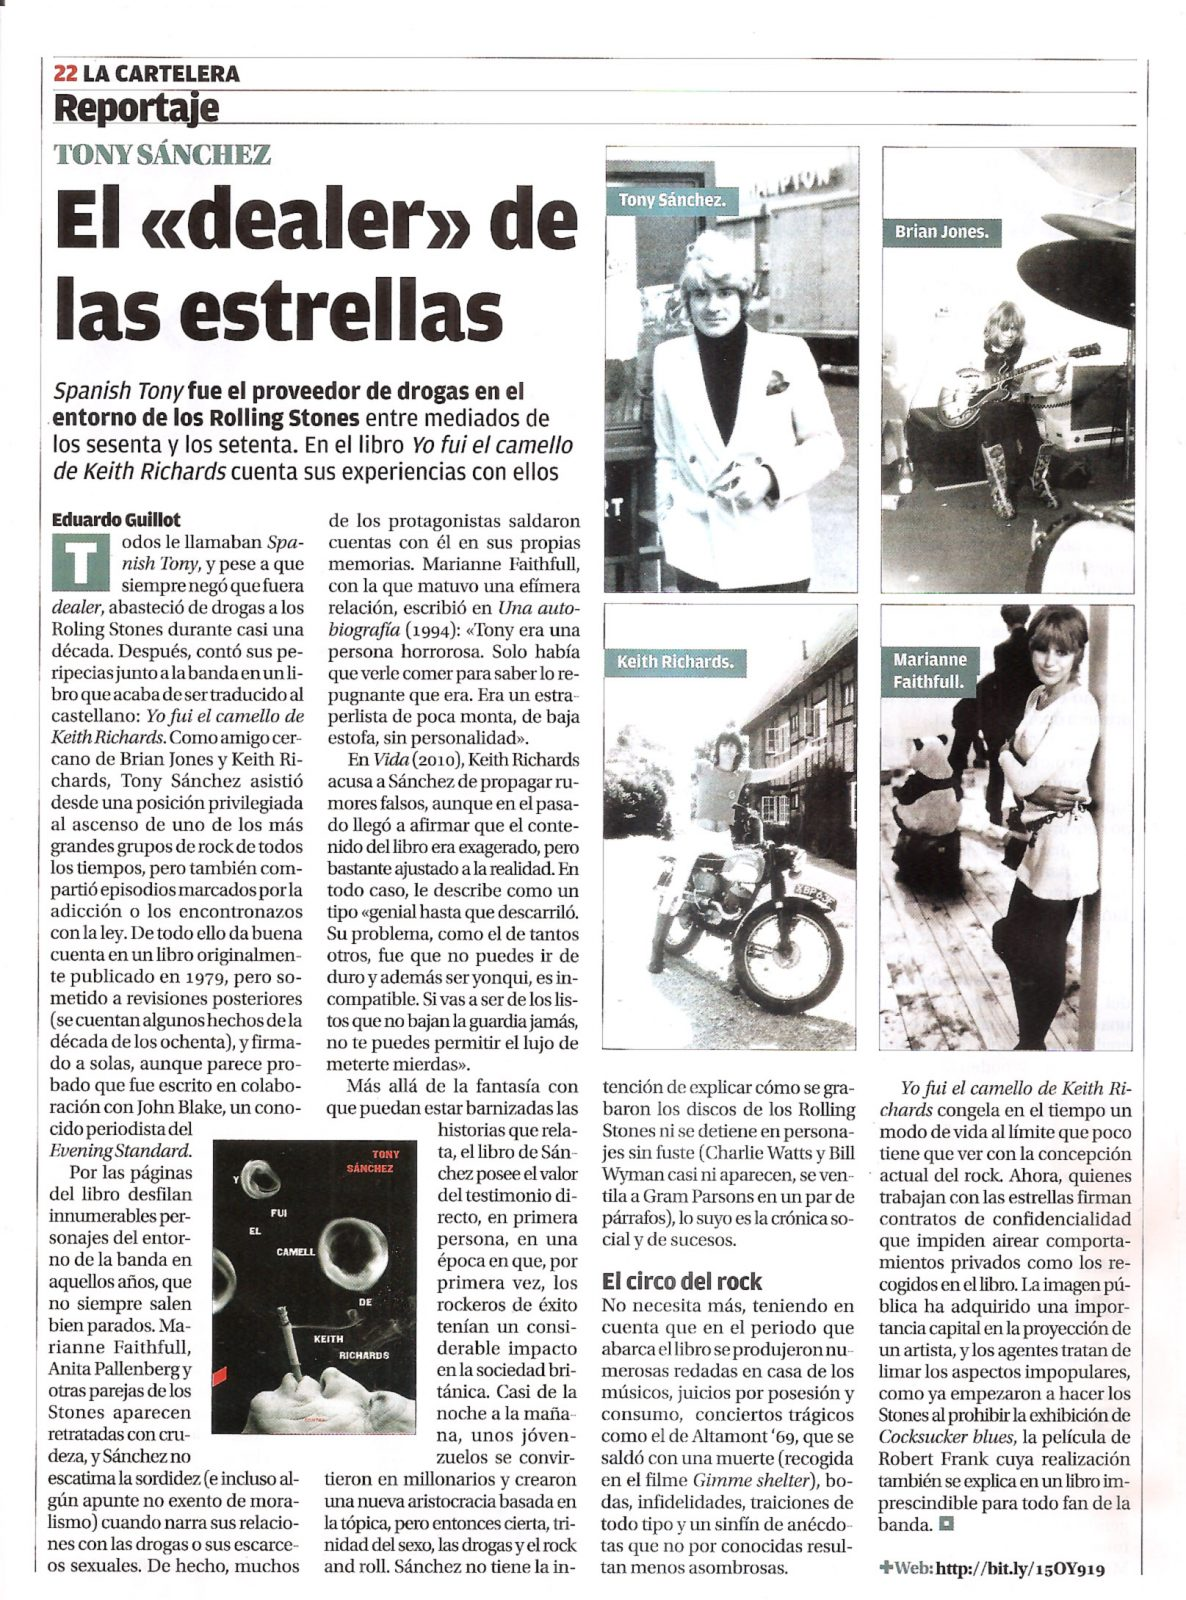 Libro De Keith Richards Prensa De Yo Fui El Camello De Keith Richards